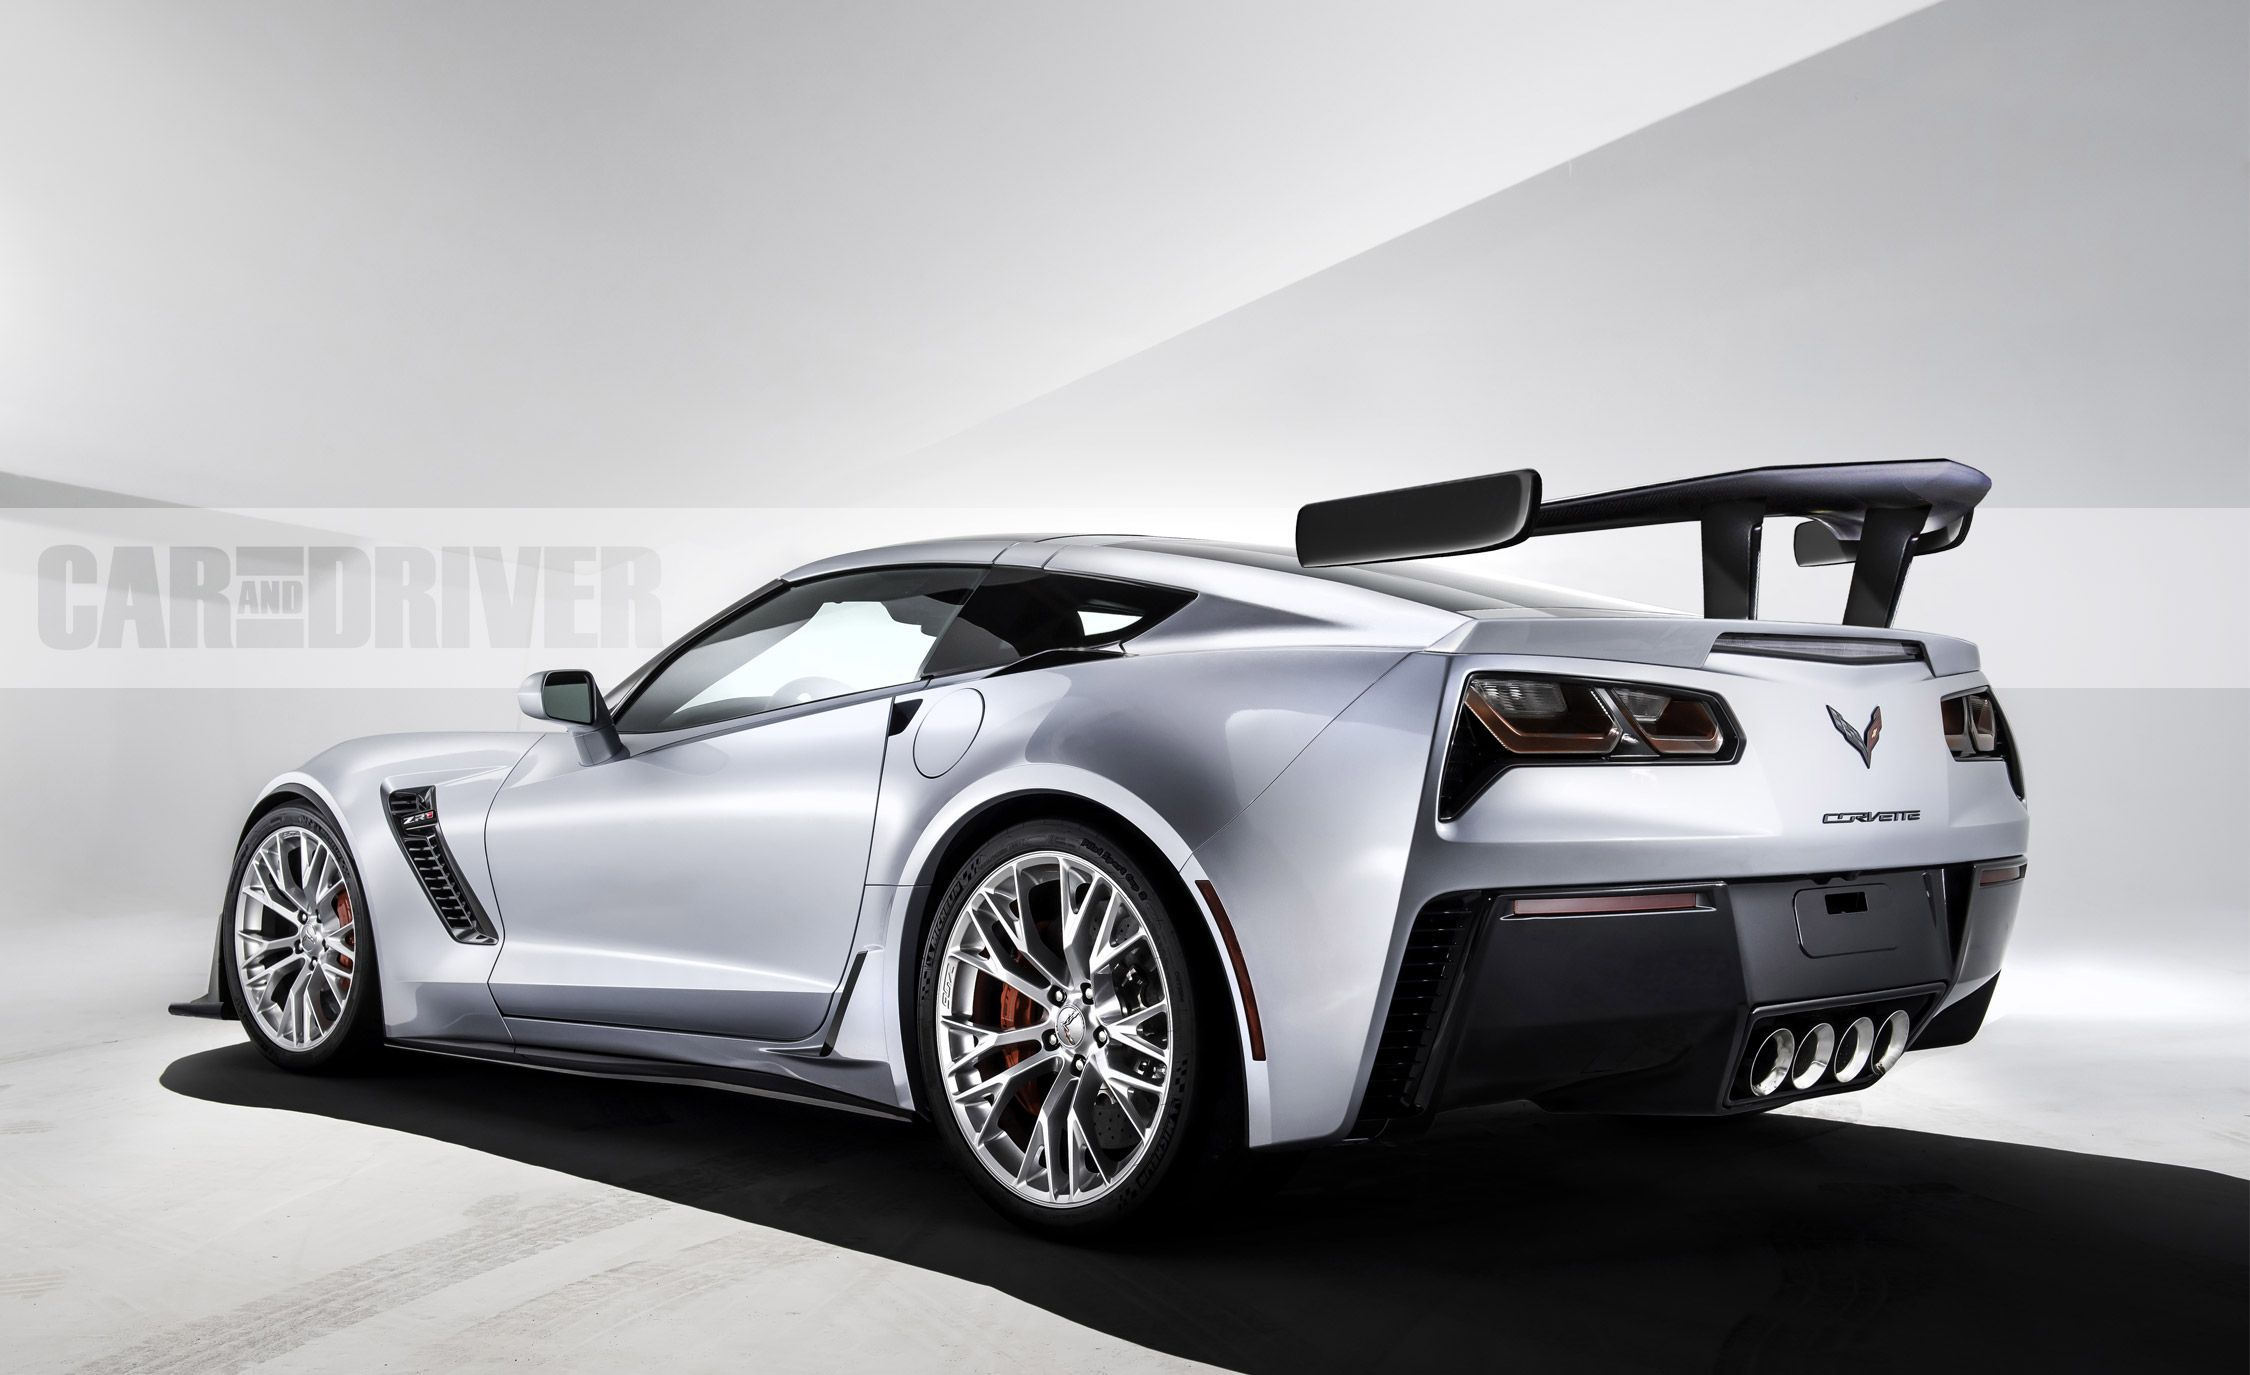 The 2019 Chevrolet Corvette Zr1 Is A Car Worth Waiting For